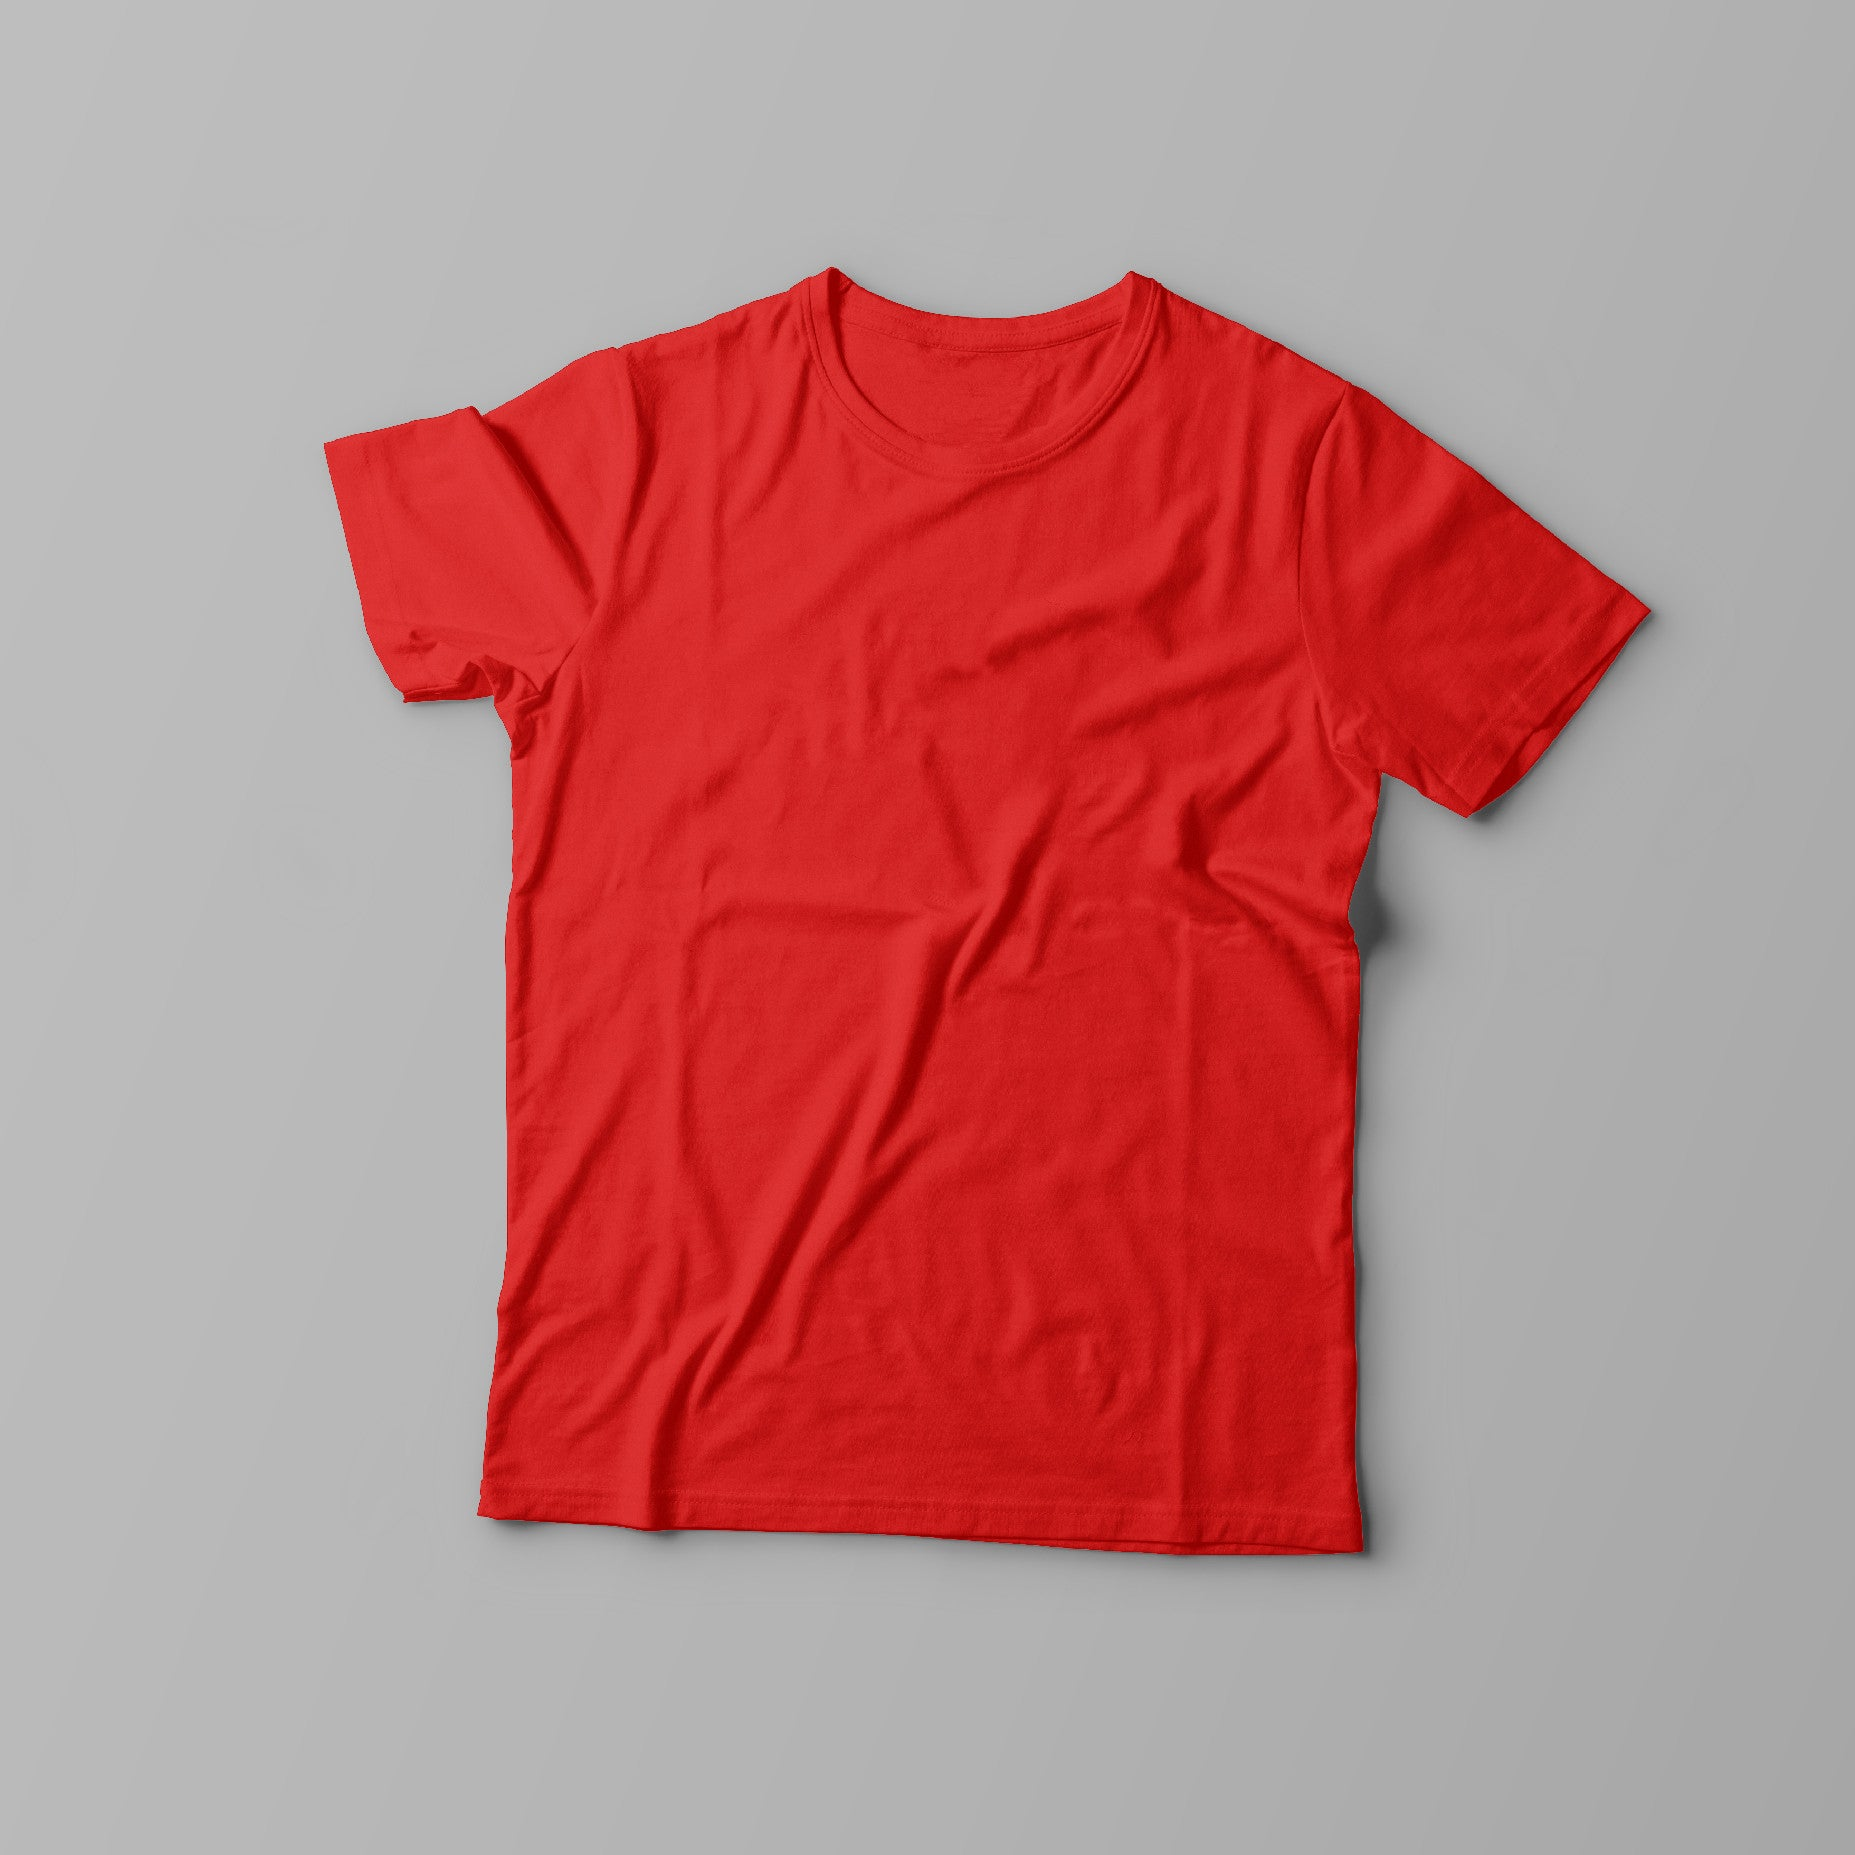 Creative Personalised Printed Designed Red T-shirts Print Your Logo, Artwork, Photos Or Designs Perfect for a Birthday, Christmas Gift For The Home, Kitchen, Living Room, Bedroom, Office, Businesses, Restaurants, Pubs, Cafes, Bars And Parties Perfect Gift For Adults And Children